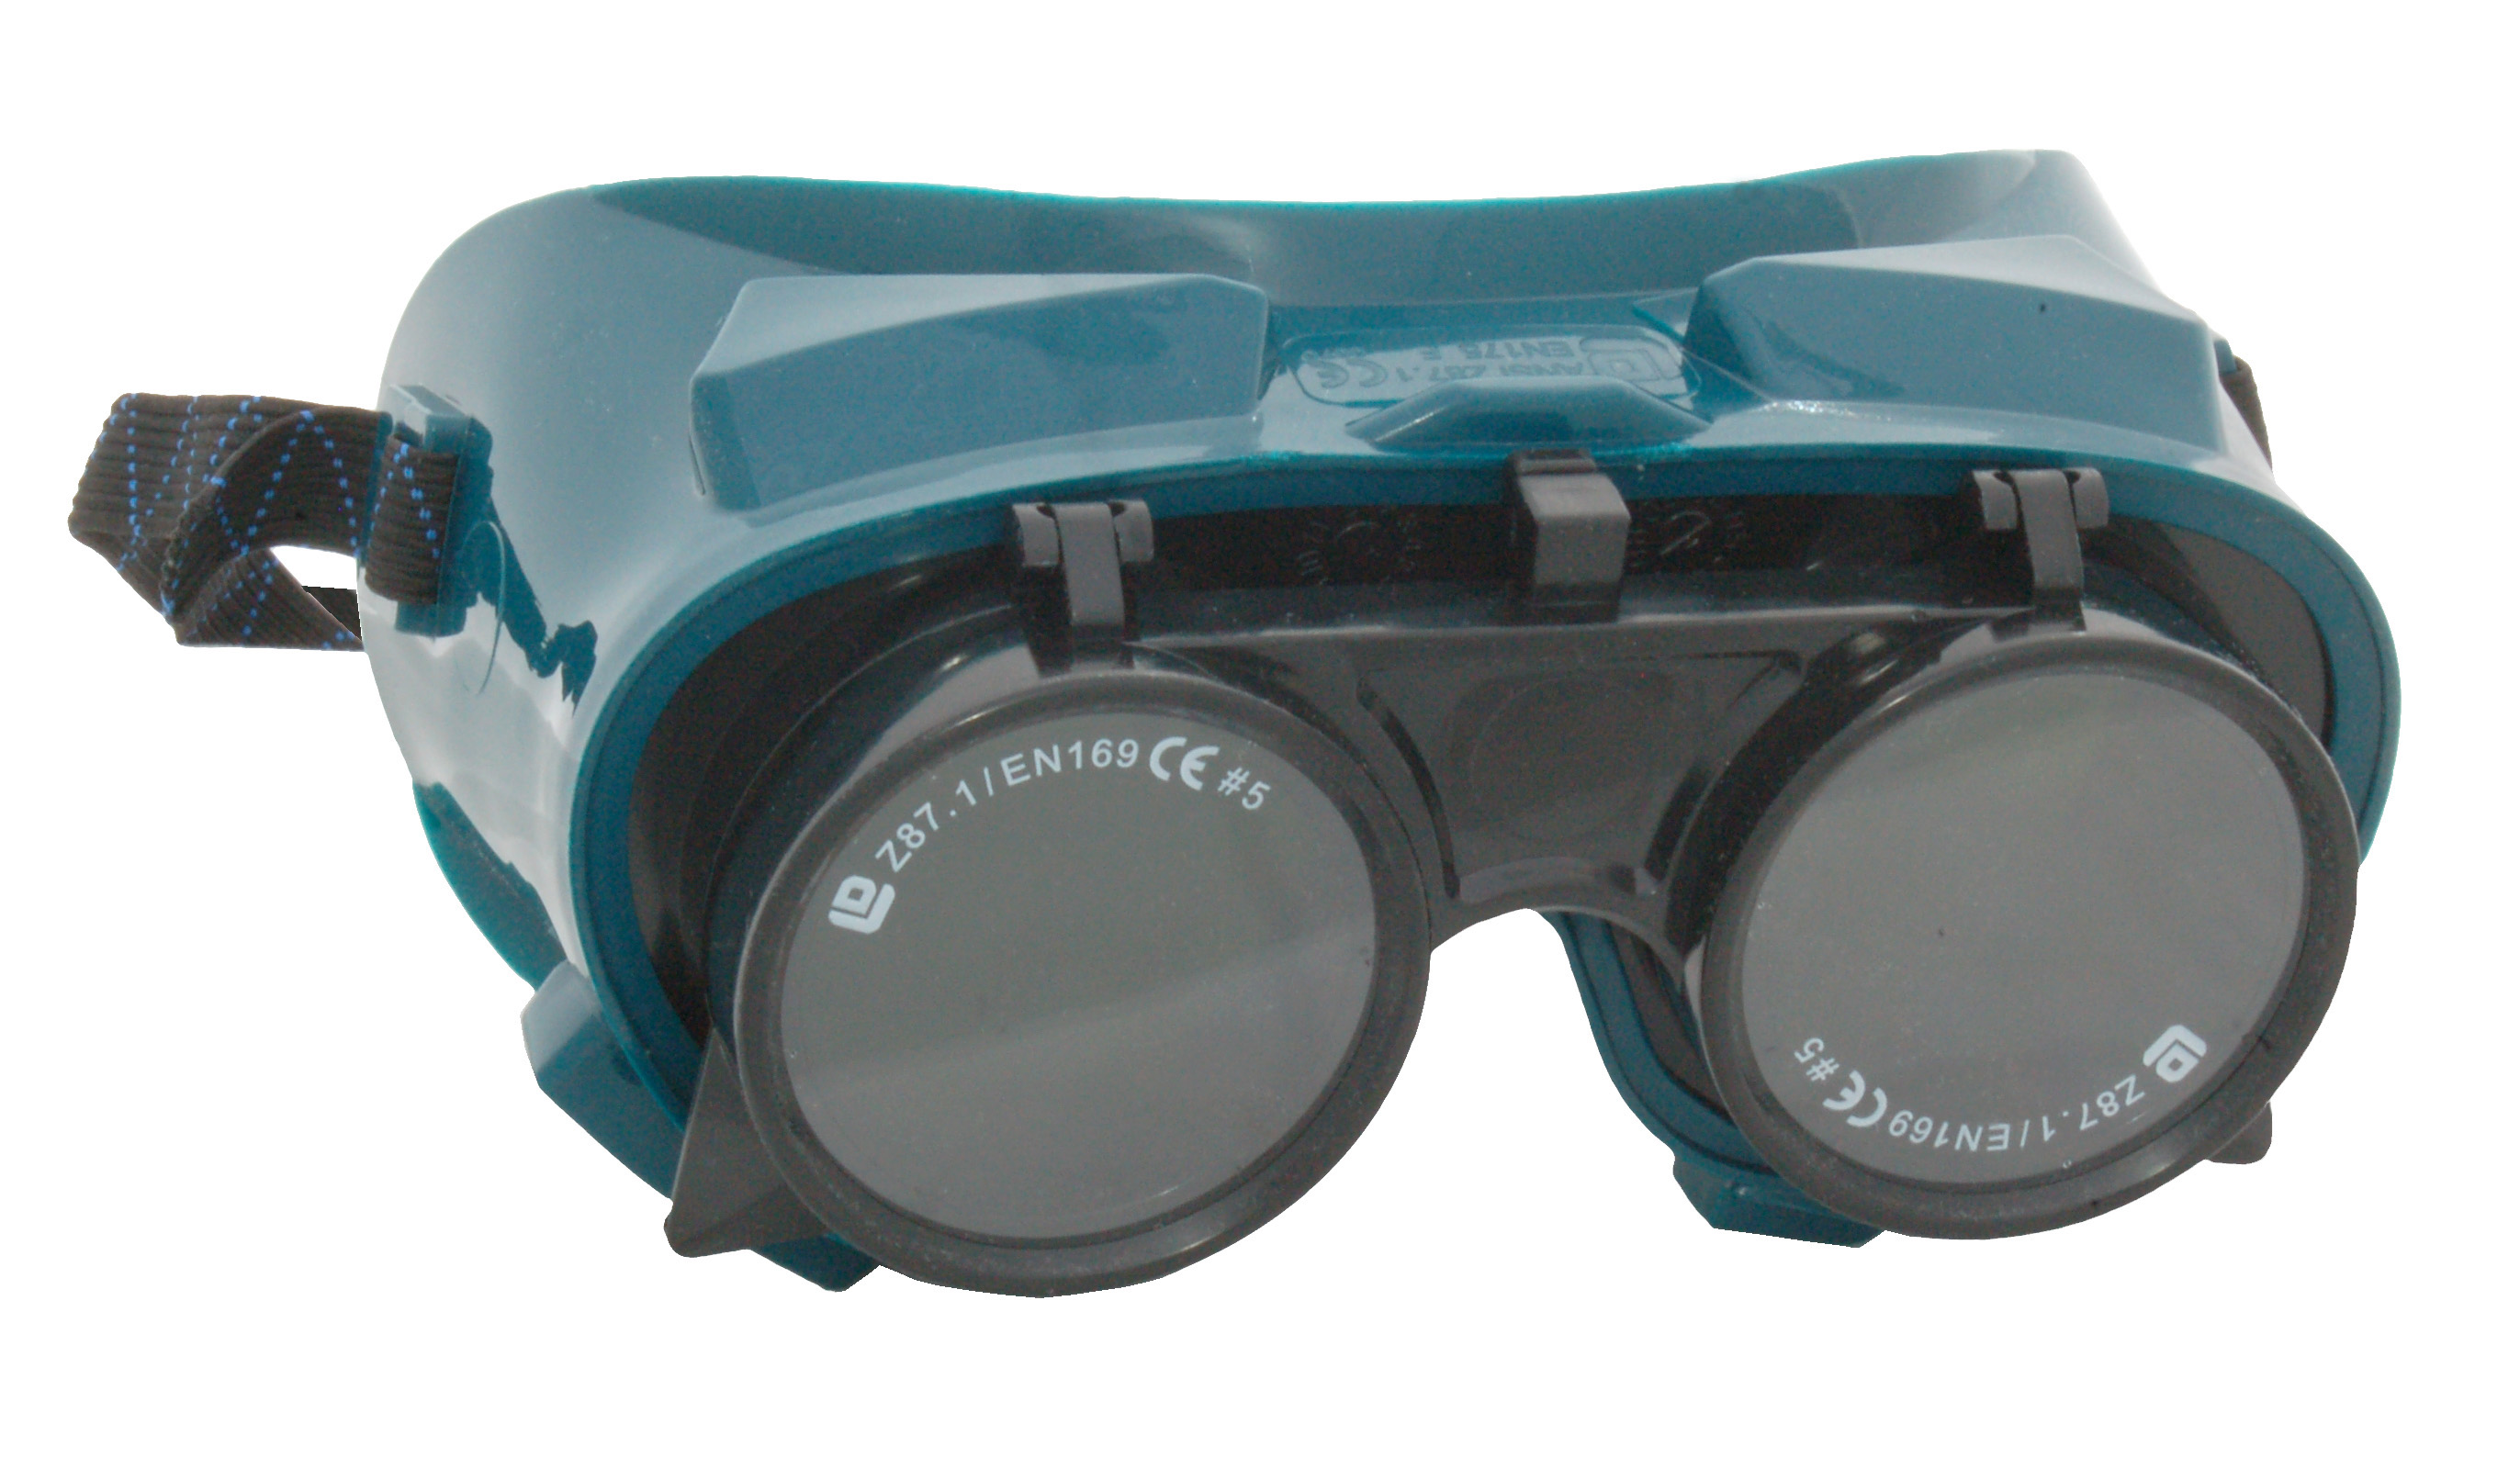 Zenport Welding Goggles WG235 Ergonomic Top Quality Welding Eye Protection